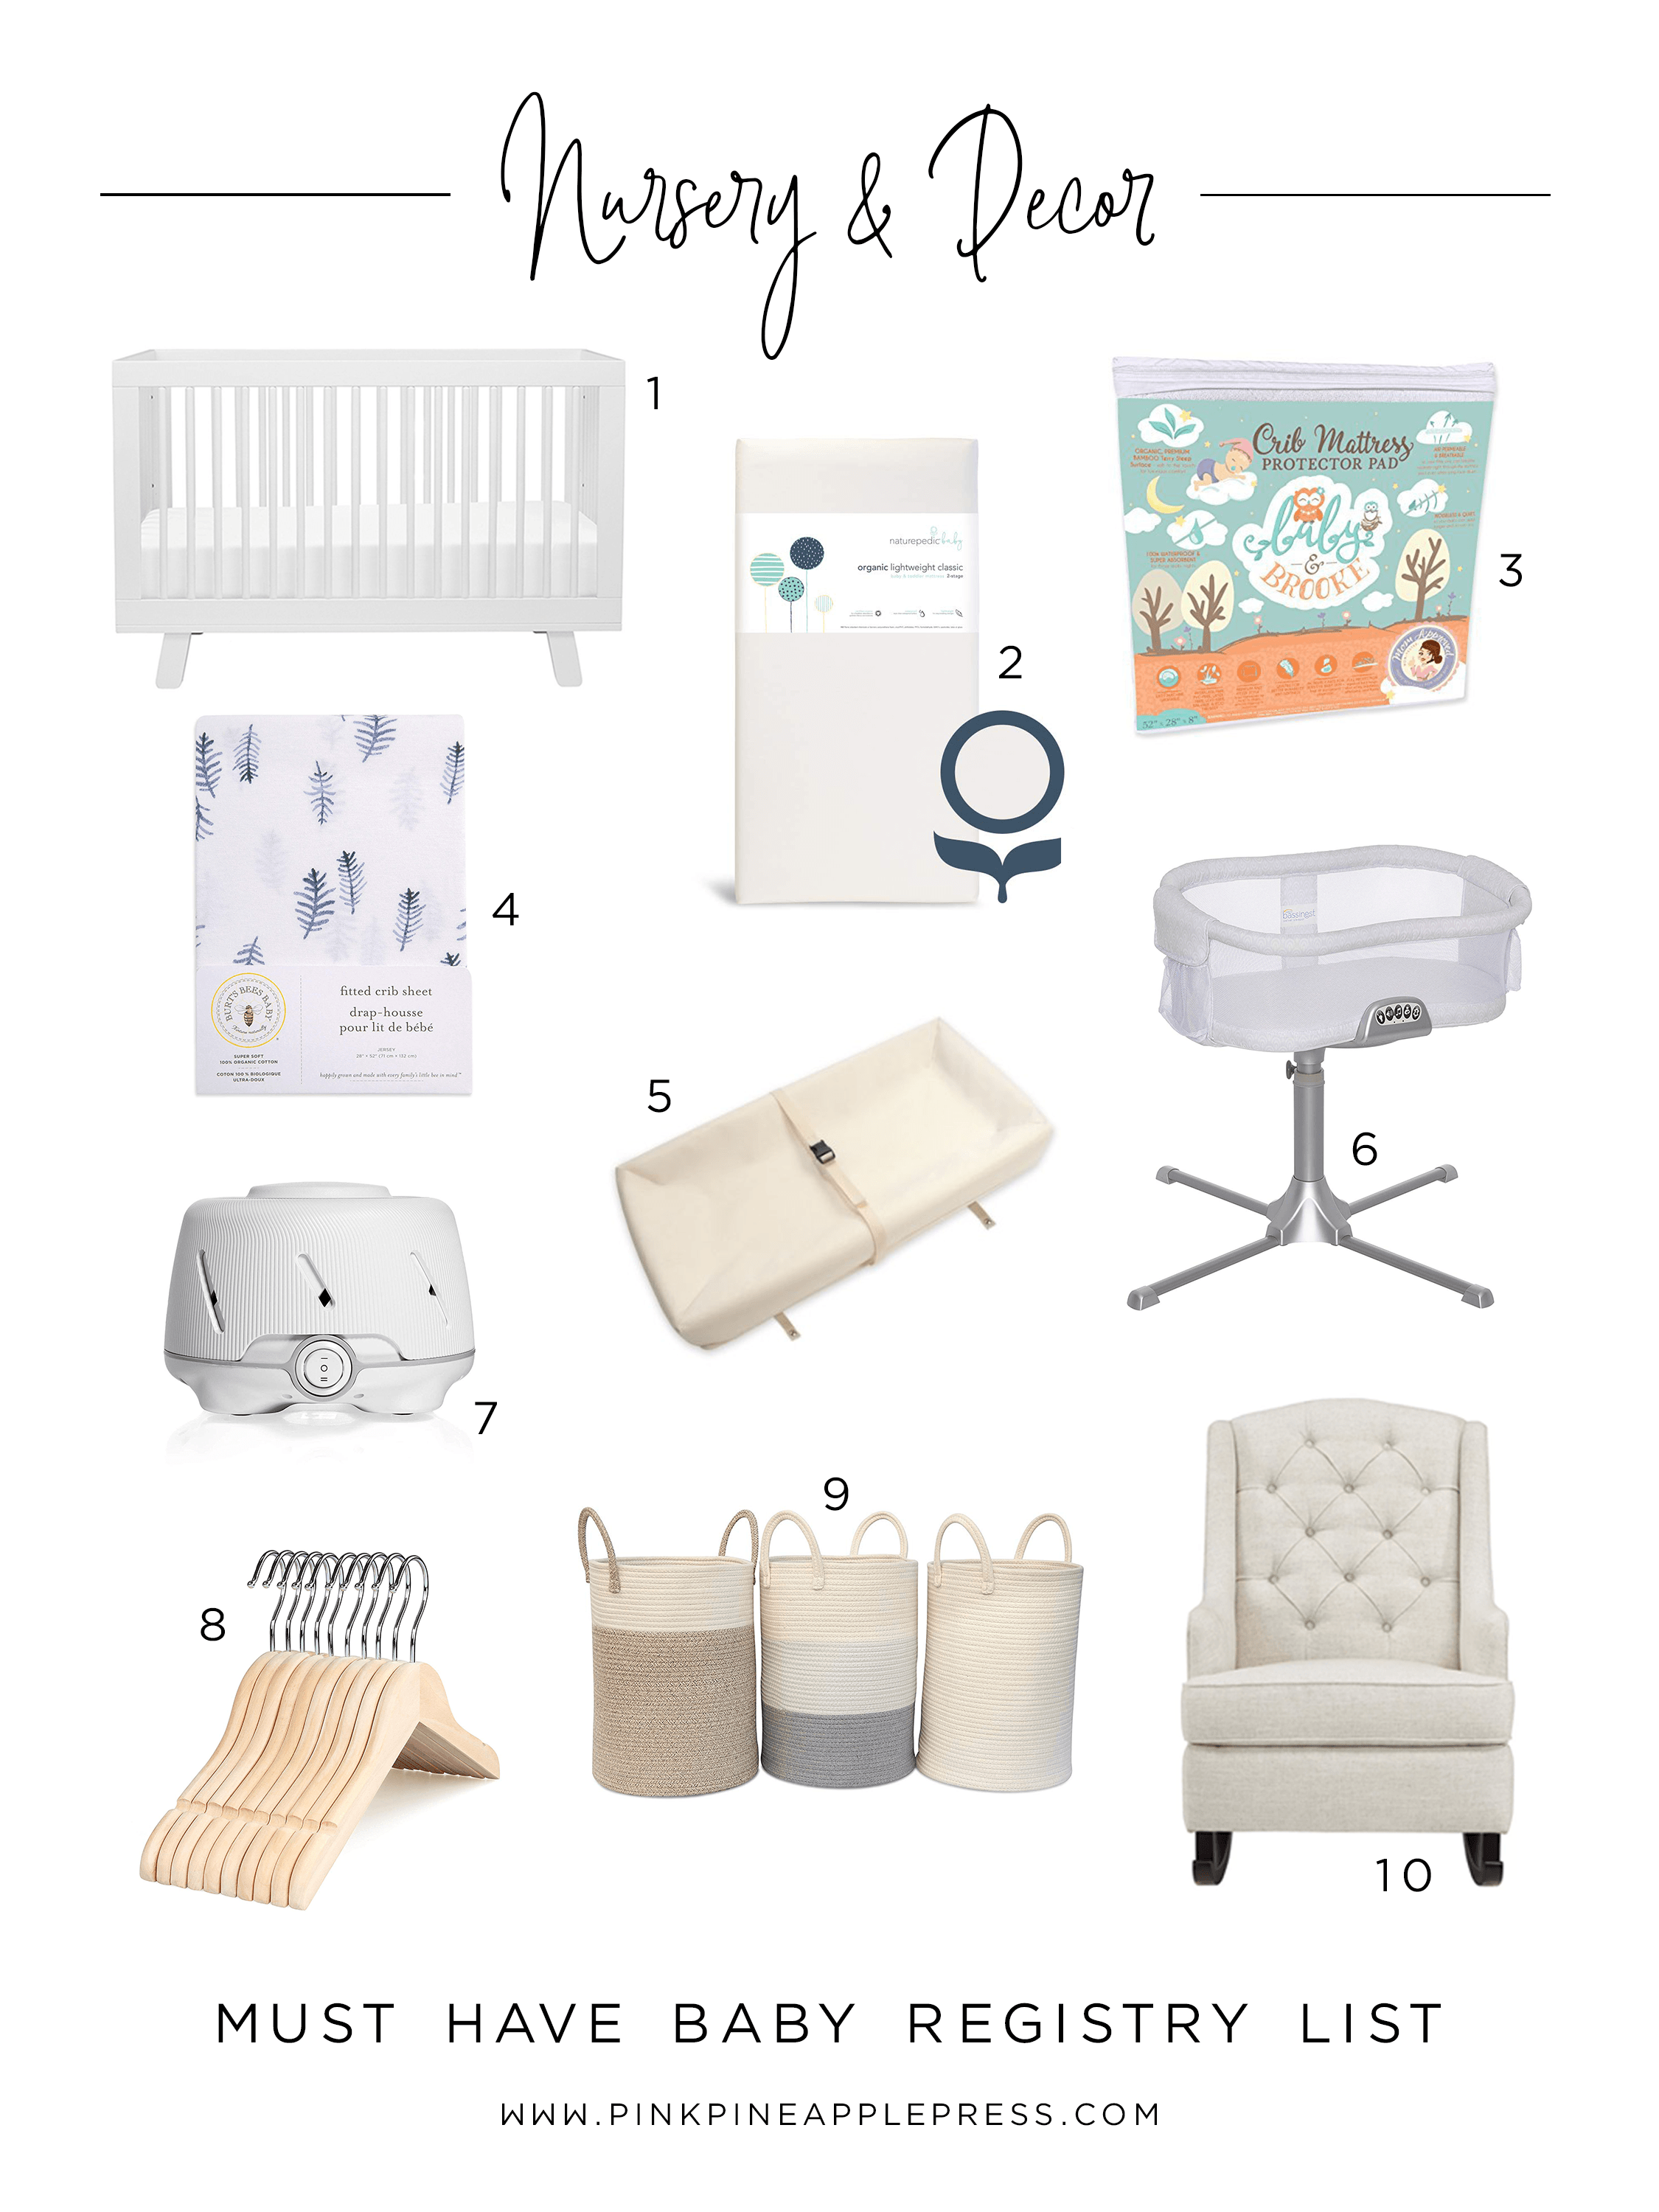 Must Have Baby Registry Items - Nursery & Decor